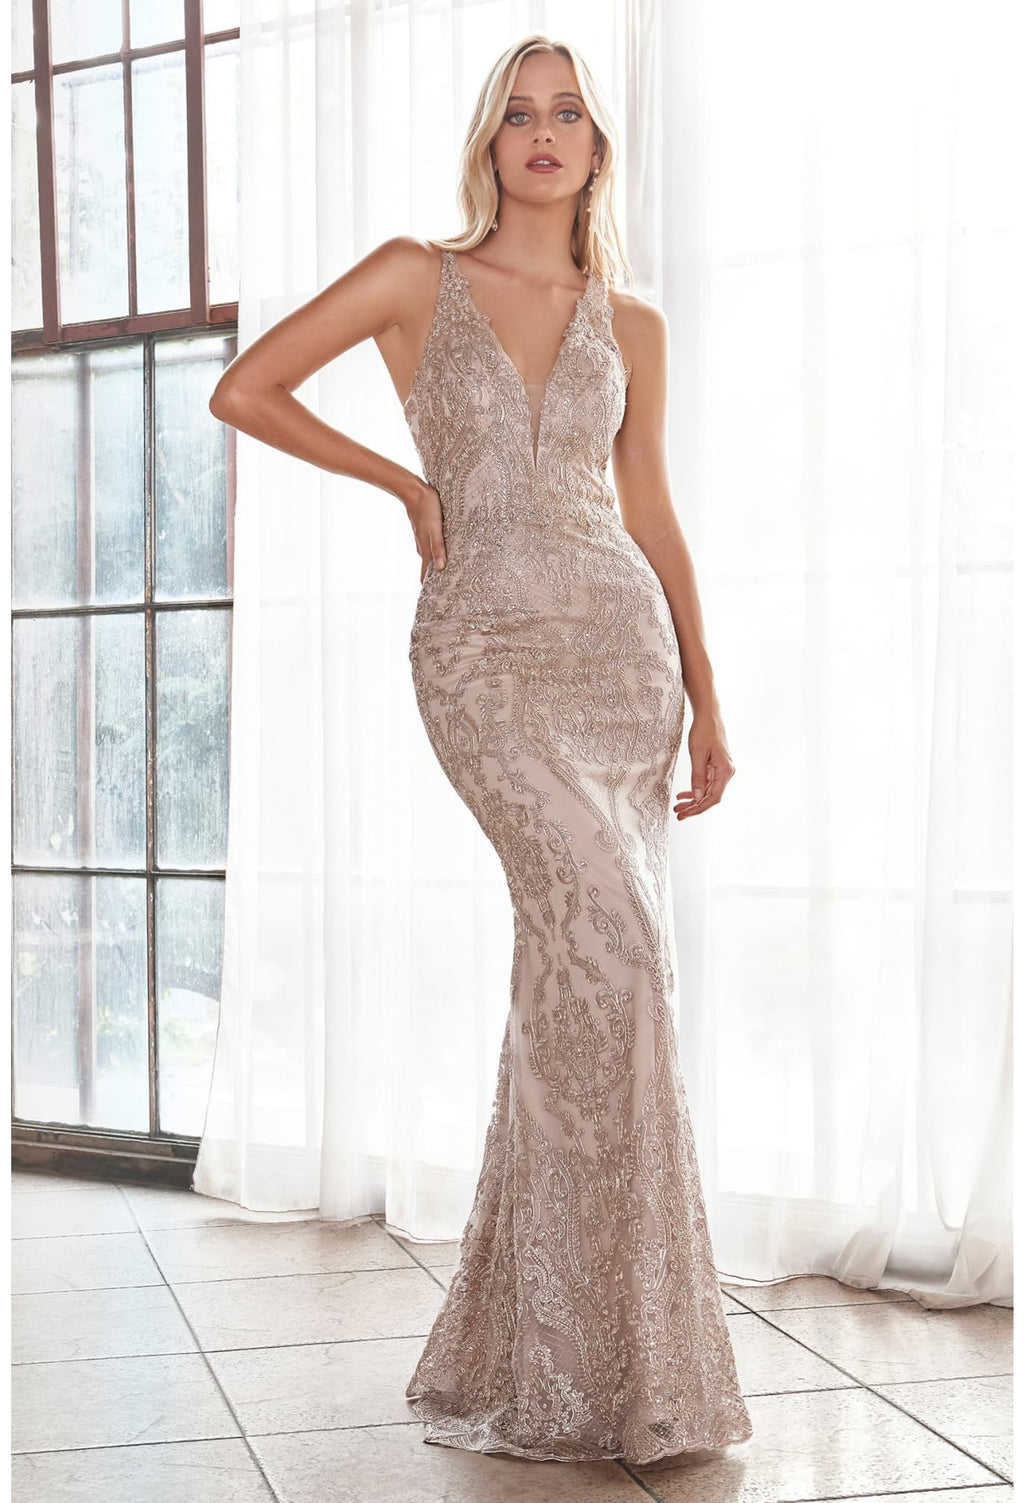 Slim fit lace gown with deep v-neckline and covered lace back